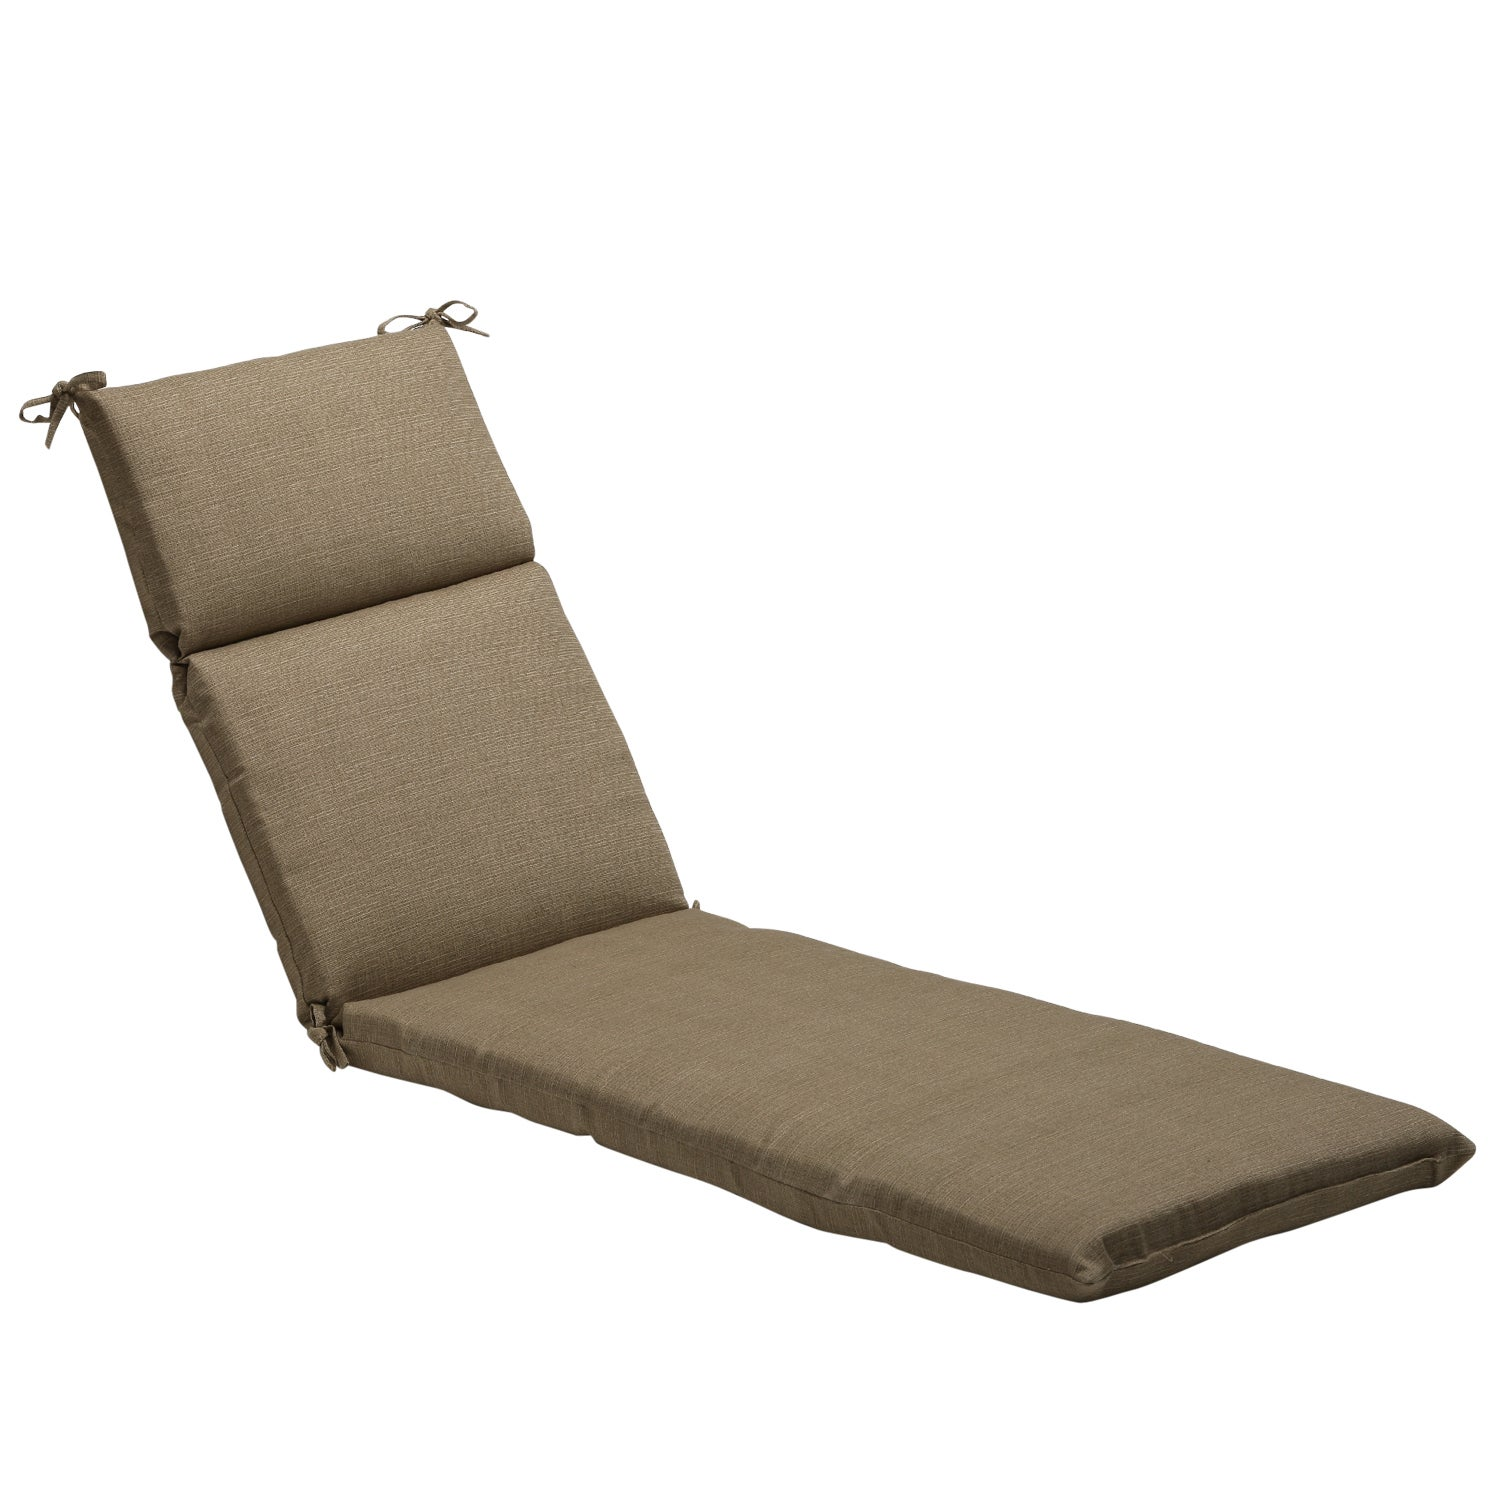 Solid taupe textured outdoor chaise lounge cushion for Chaise cushions on sale